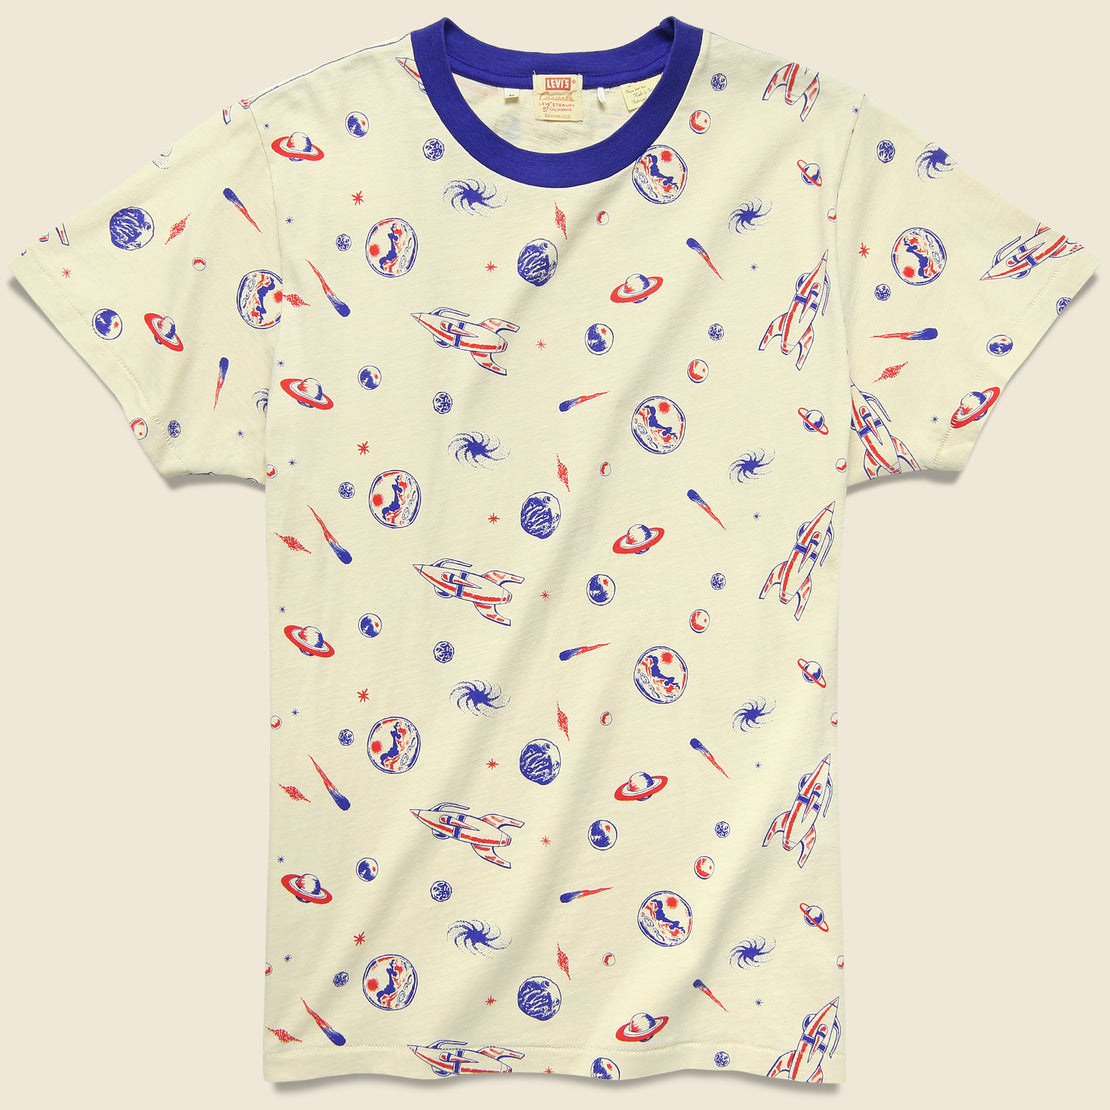 Levis Vintage Clothing Spaced All Over Graphic Tee - Creme Brulee